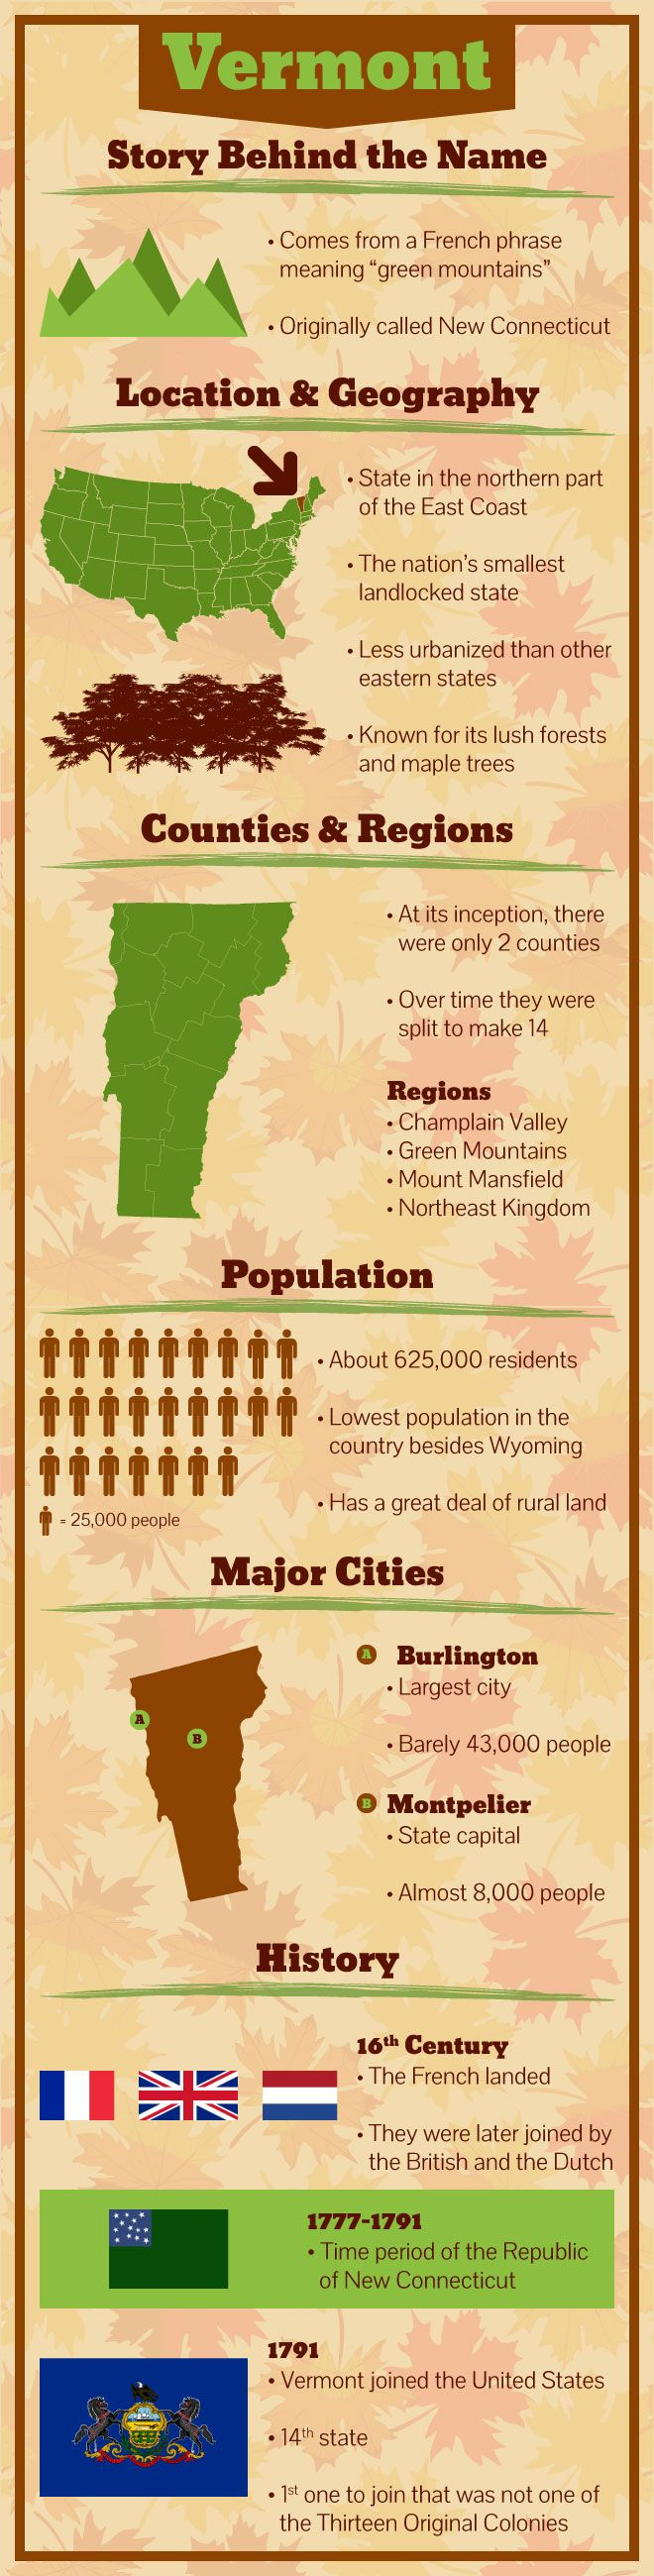 Vermont Facts -- Enjoy the taste of pure maple syrup, fresh from mother nature - maplegrove.com #vermont #mapletrees #maplegrovefarms